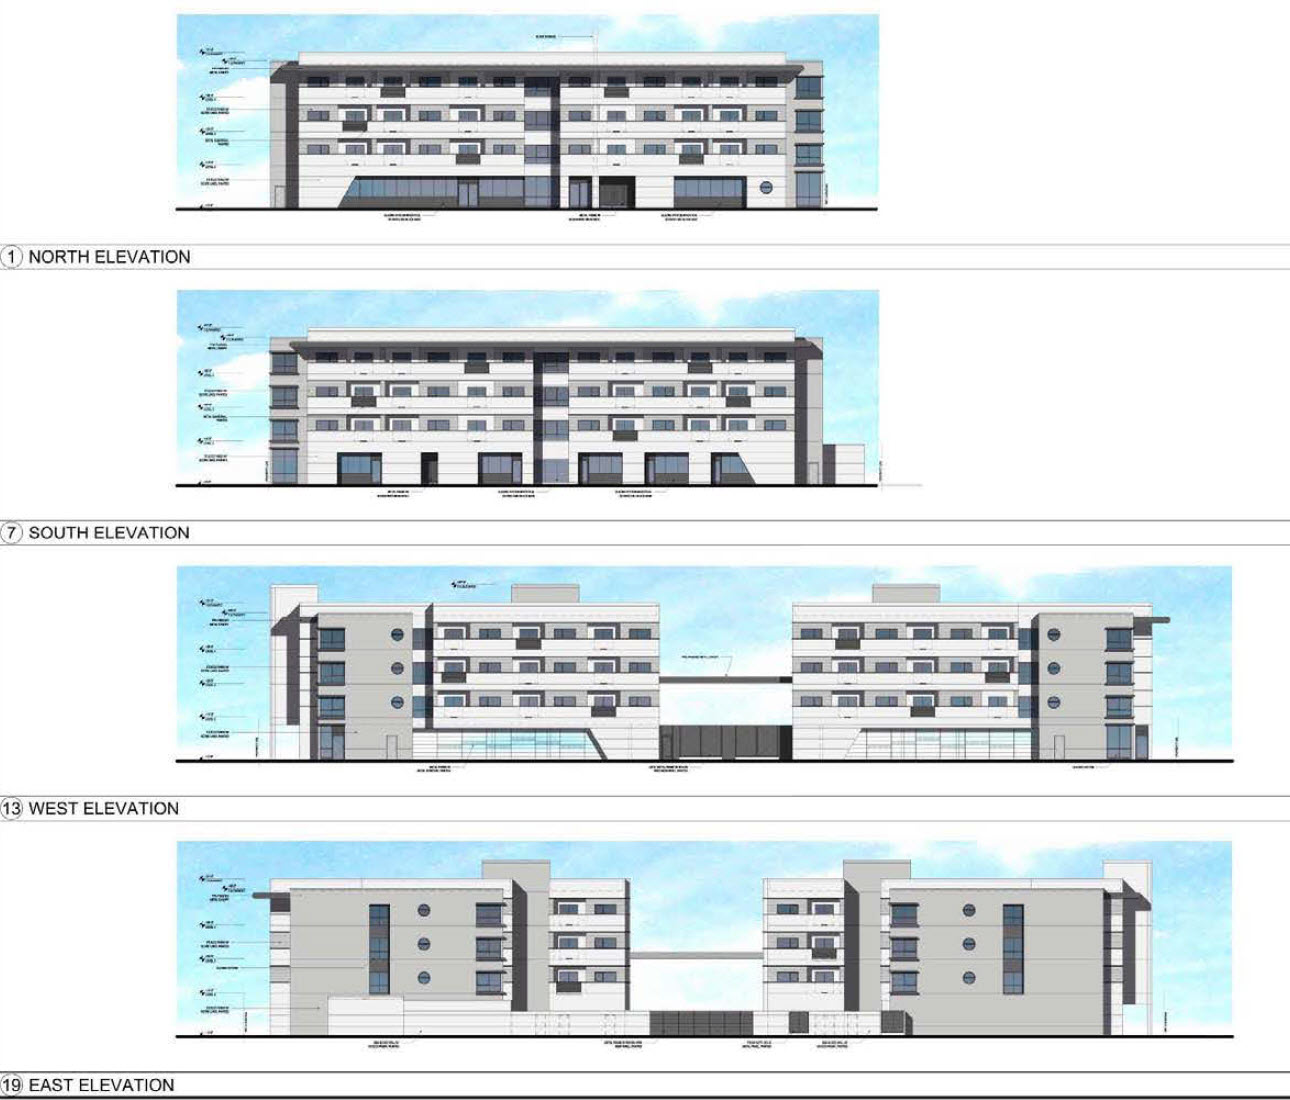 The presedential exterior elevations